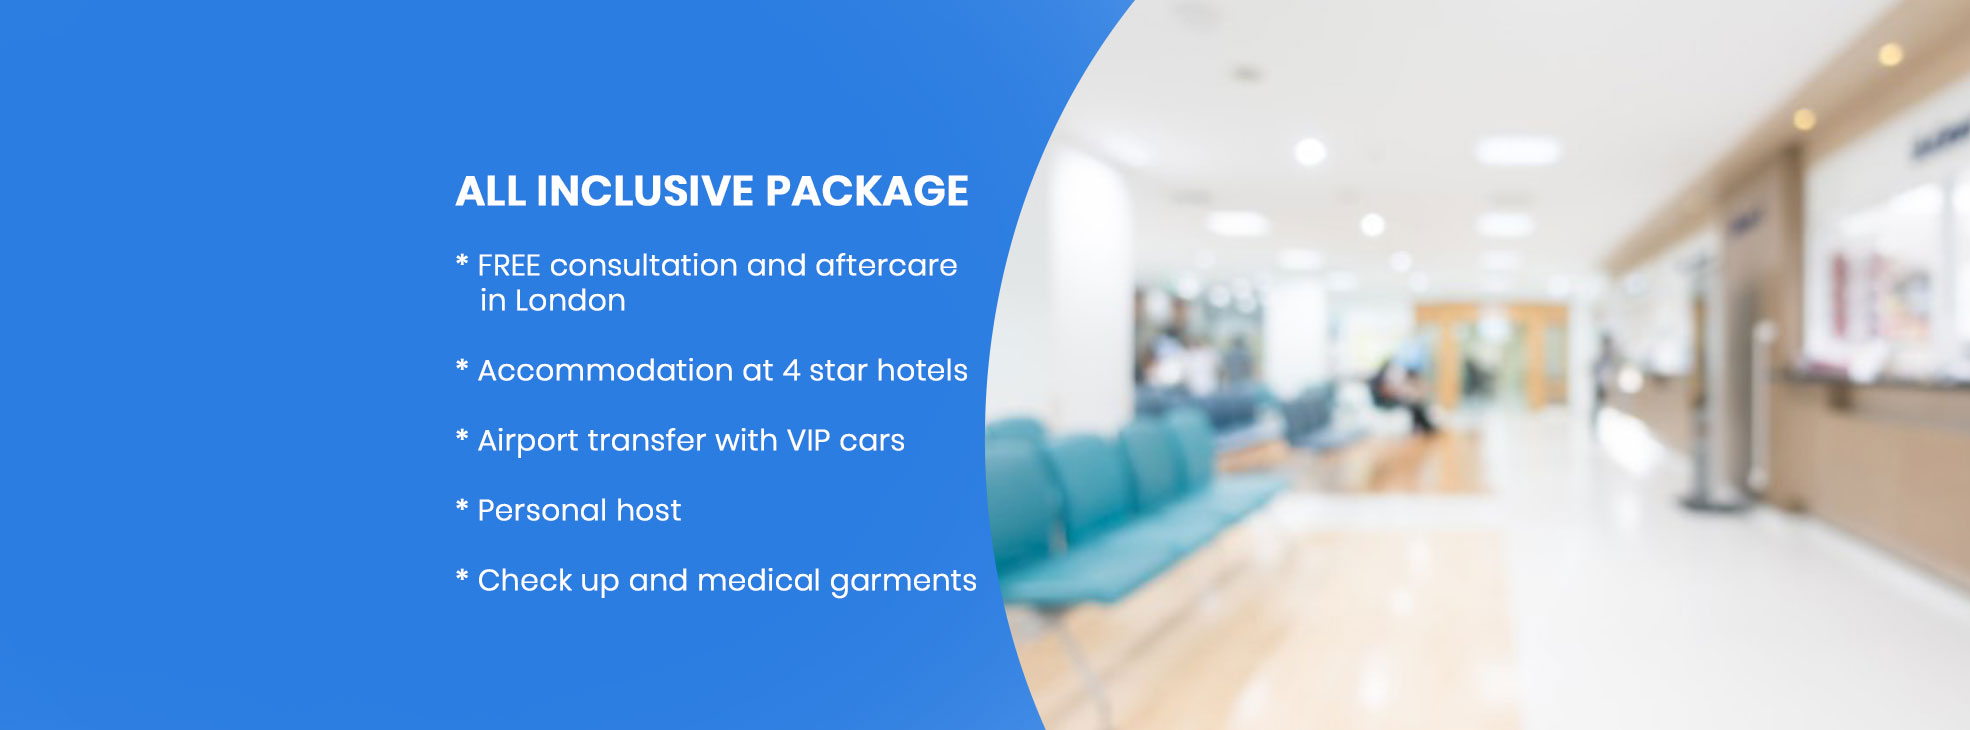 All Inclusive Package